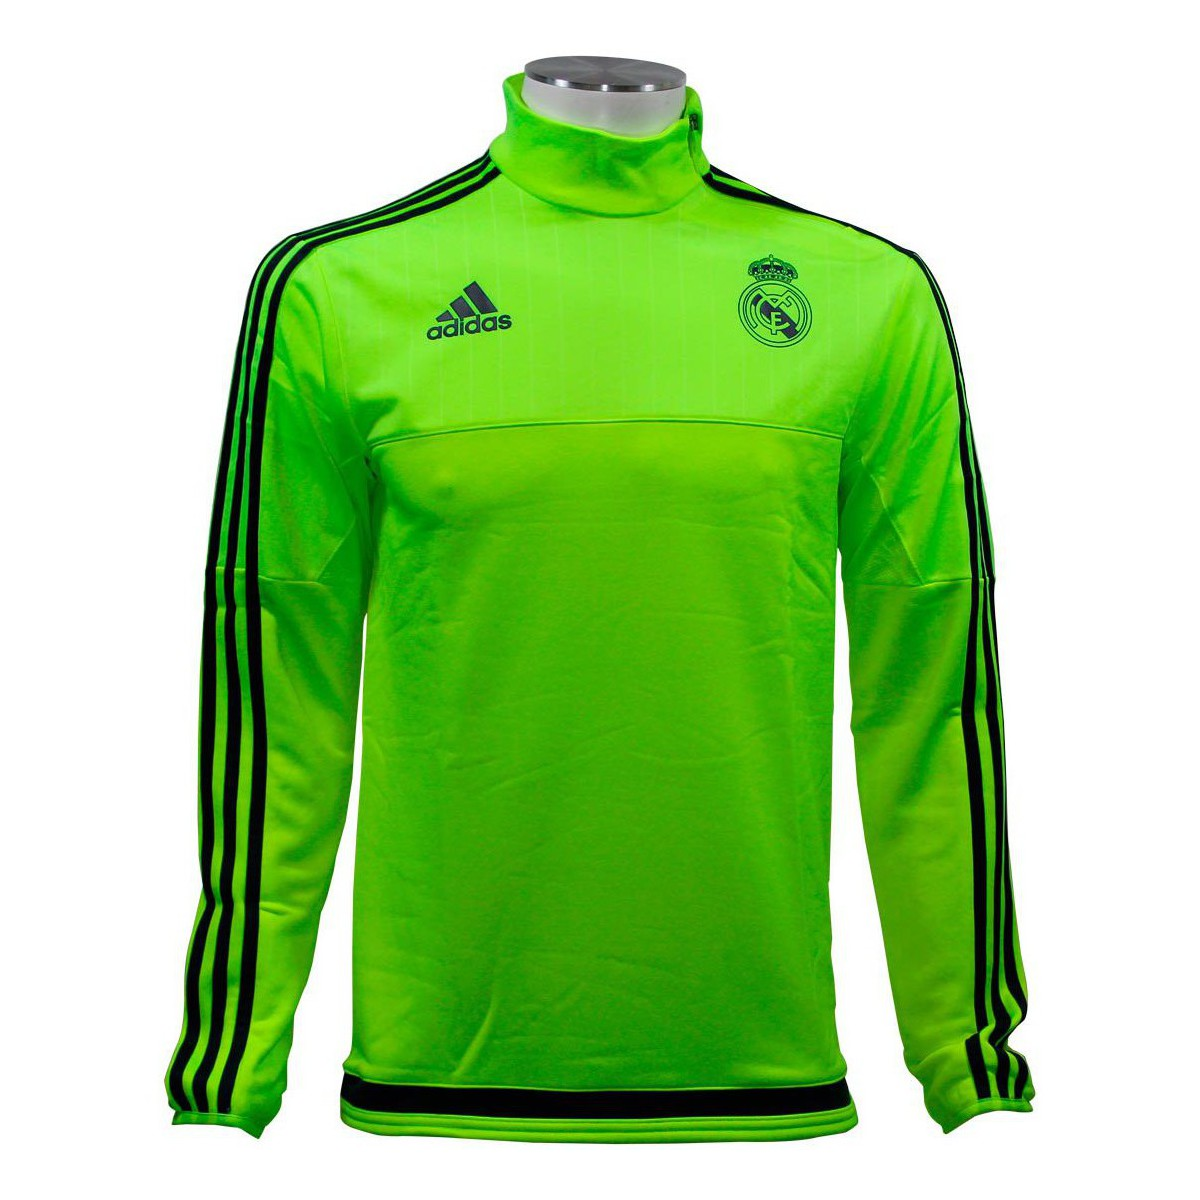 adidas Performance REAL MADRID TRACK TOP Veste de Football Homme Jaune jaune